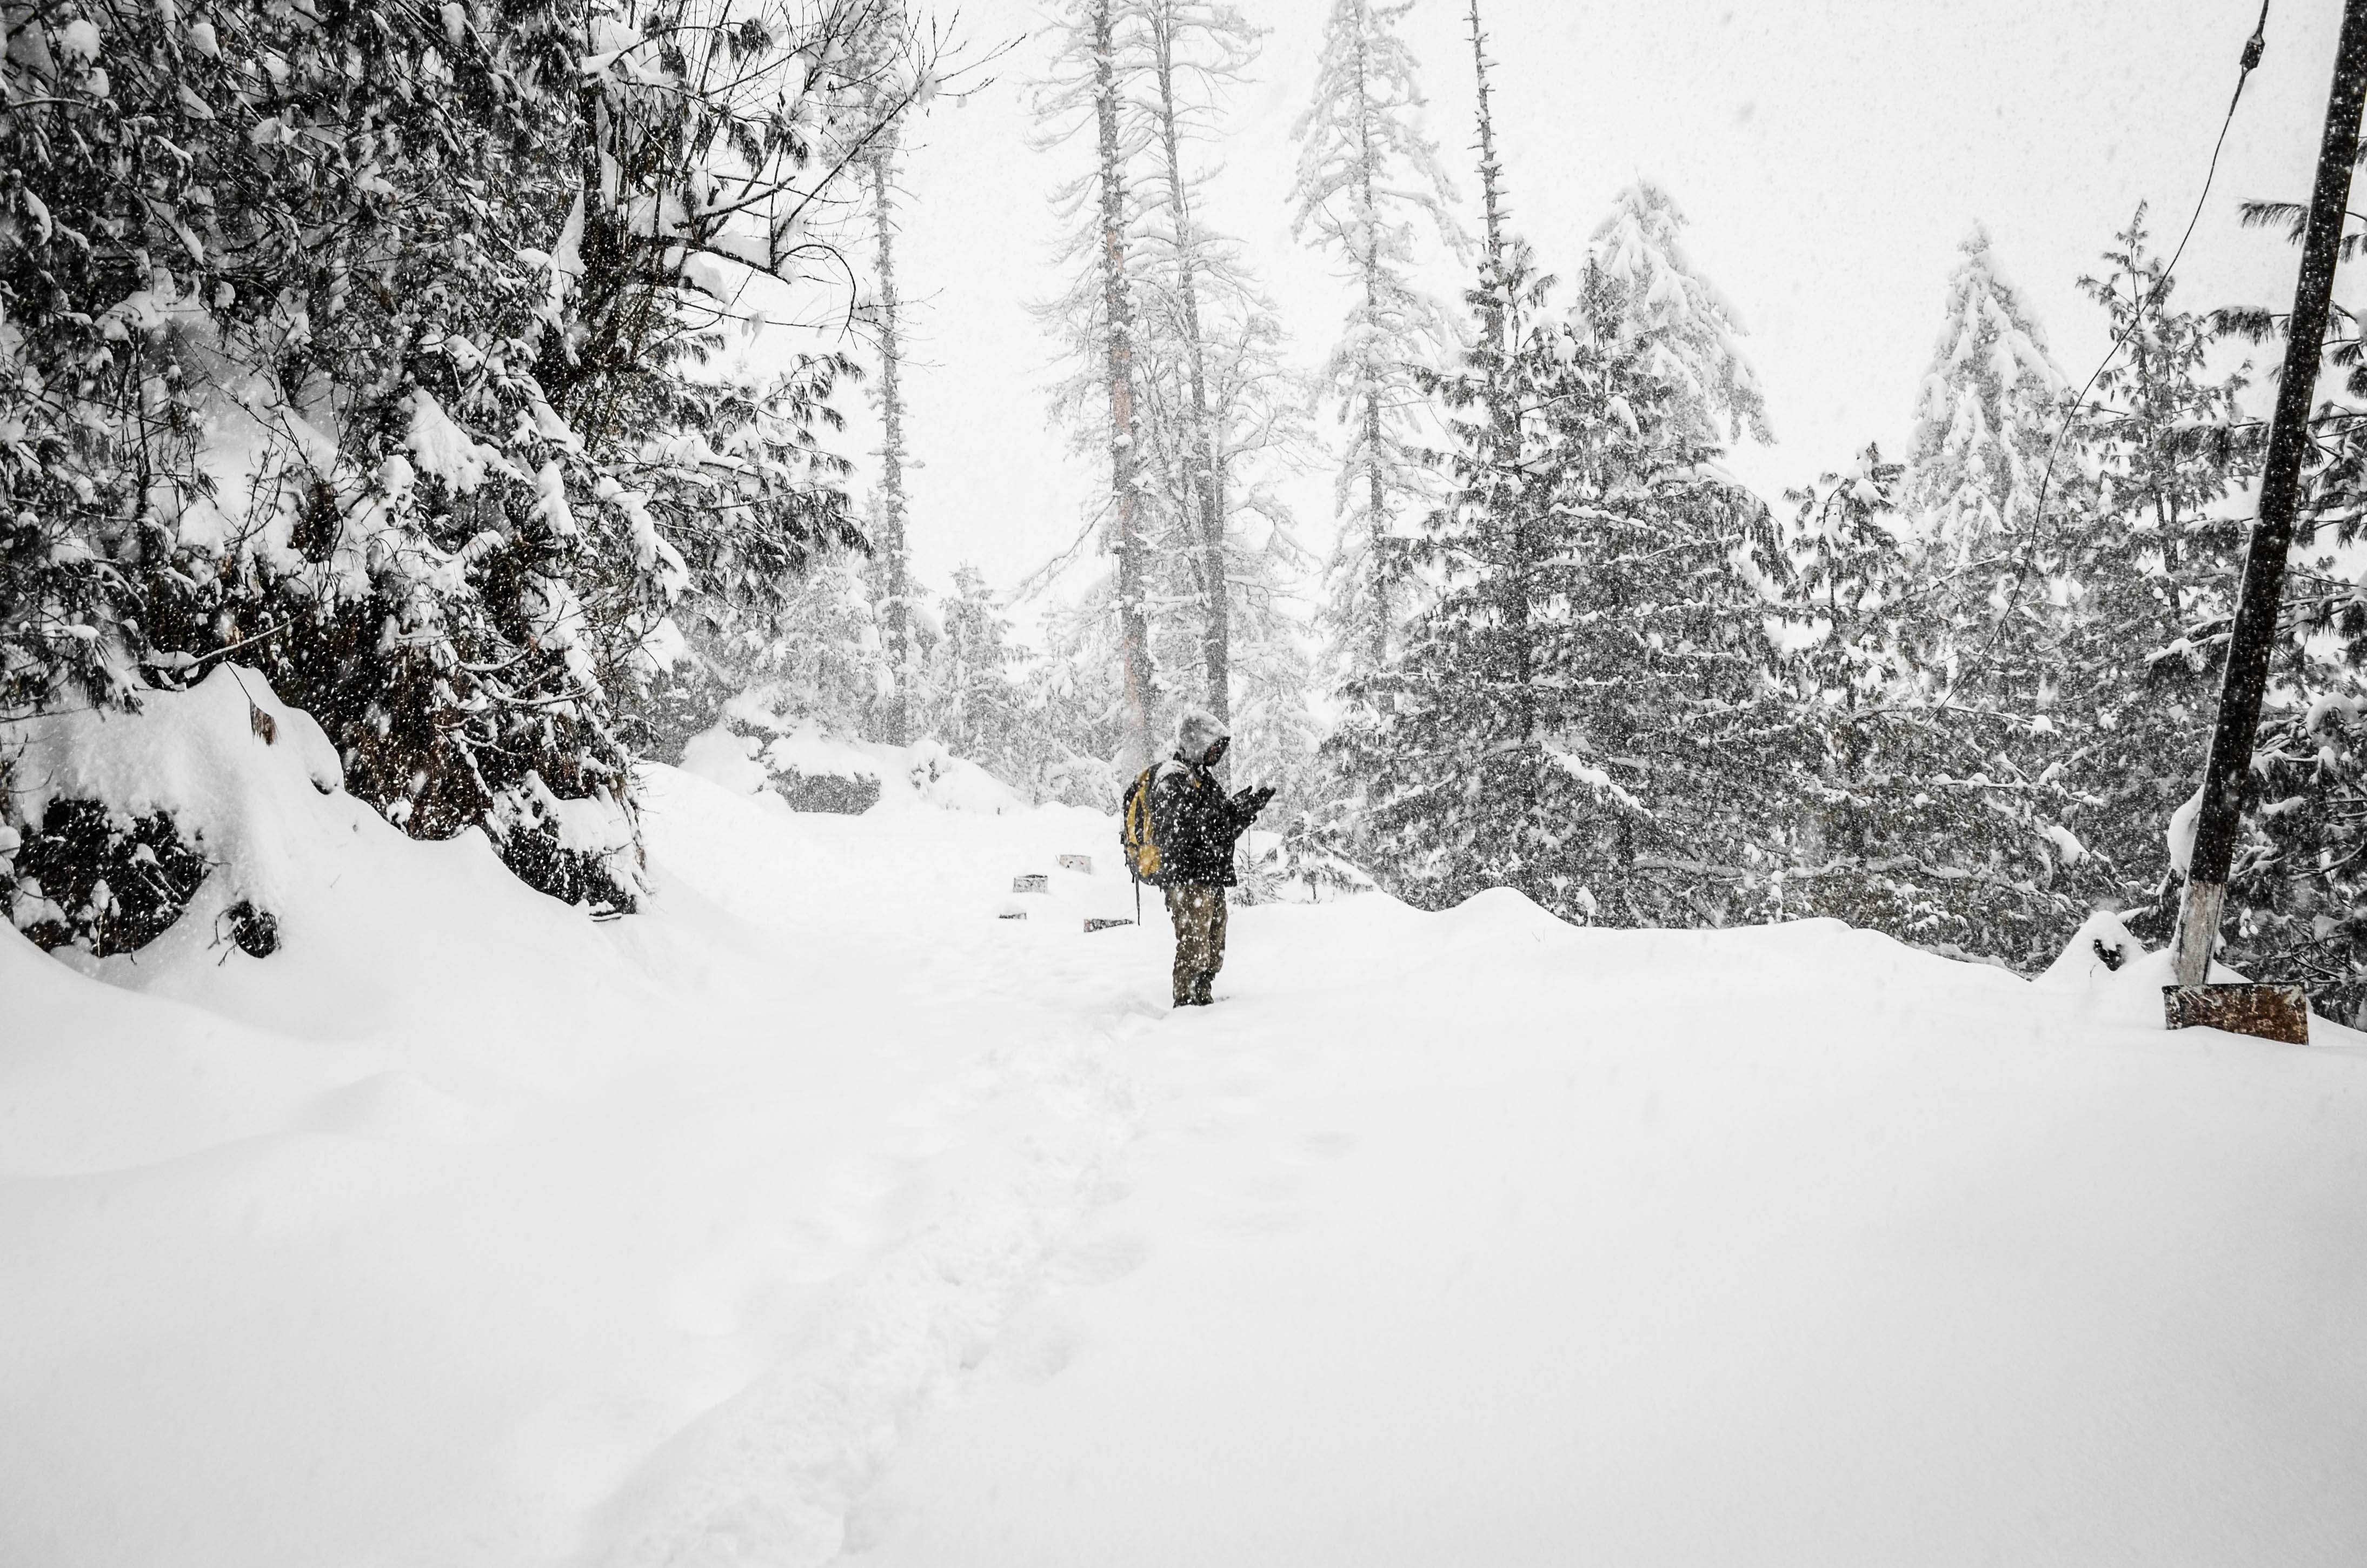 A man hiking through a forest on a snowy winter day in Shimla